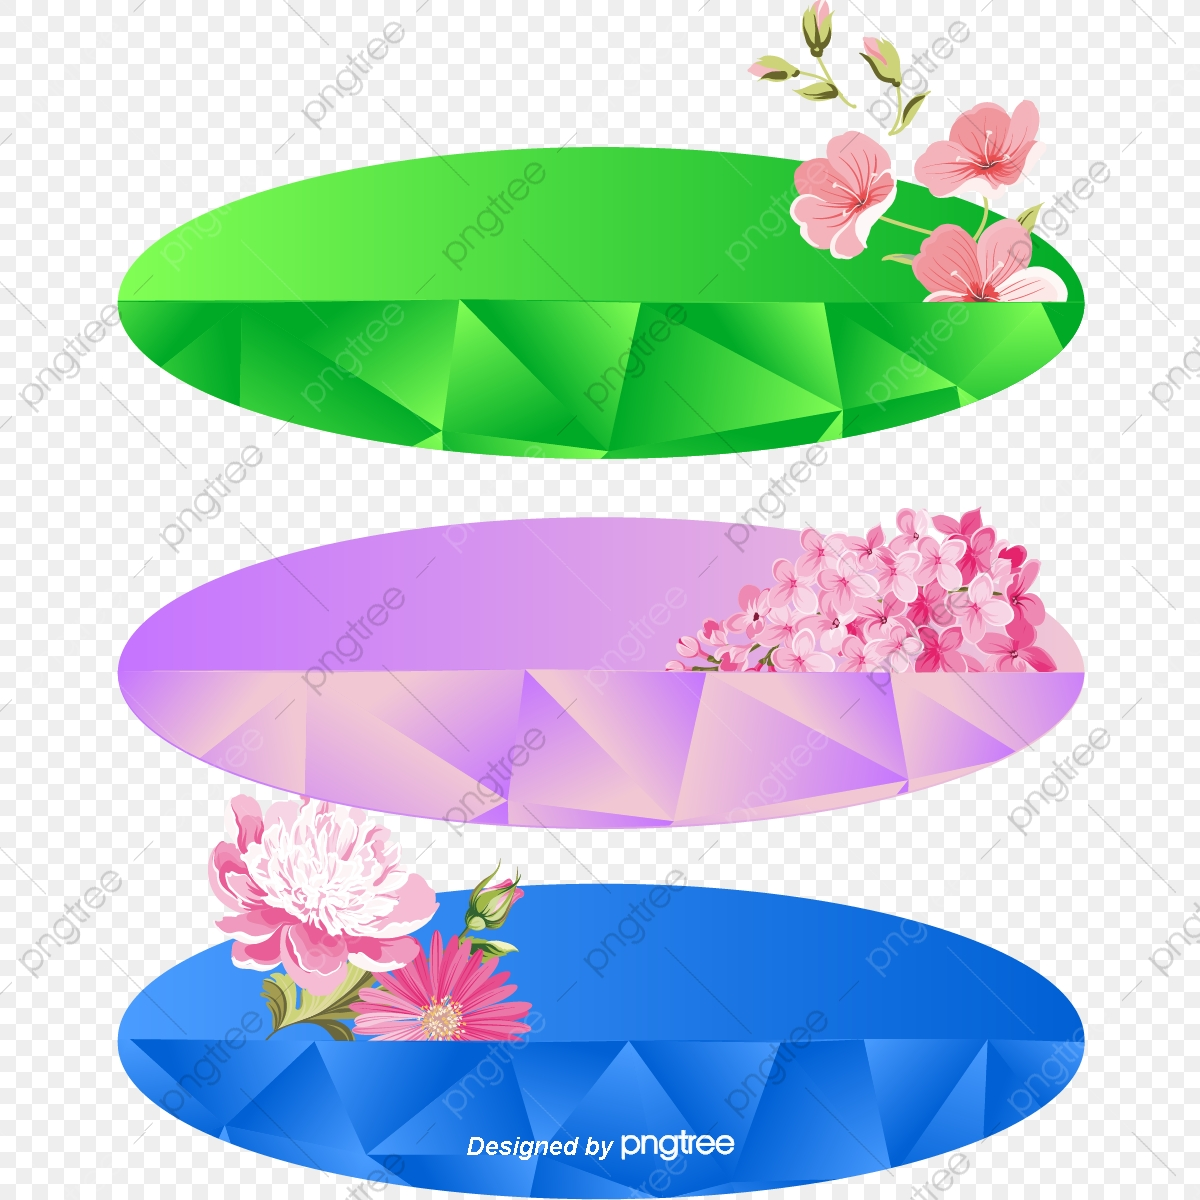 Aromatherapy Sap Banner Design Spa Theme Sap Material Spa Center Png And Vector With Transparent Background For Free Download